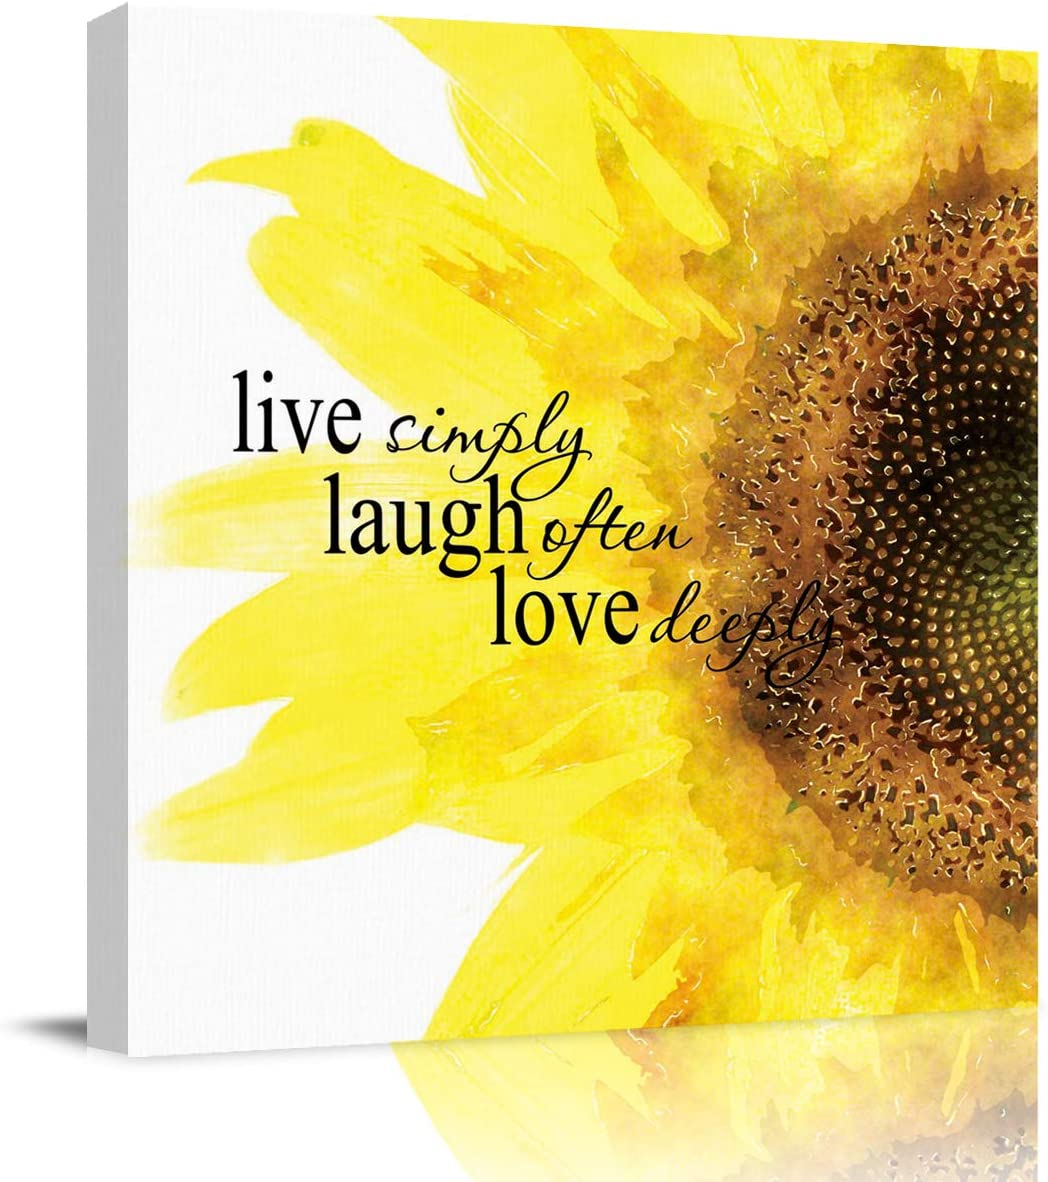 Amazon Com Wall Art Canvas Paintings Quote Live Simply Laugh Often Love Deeply With Sunflower Decor Framed Prints Ready To Hang For Living Room Office Kitchen Artwork 12x12 Inch Posters